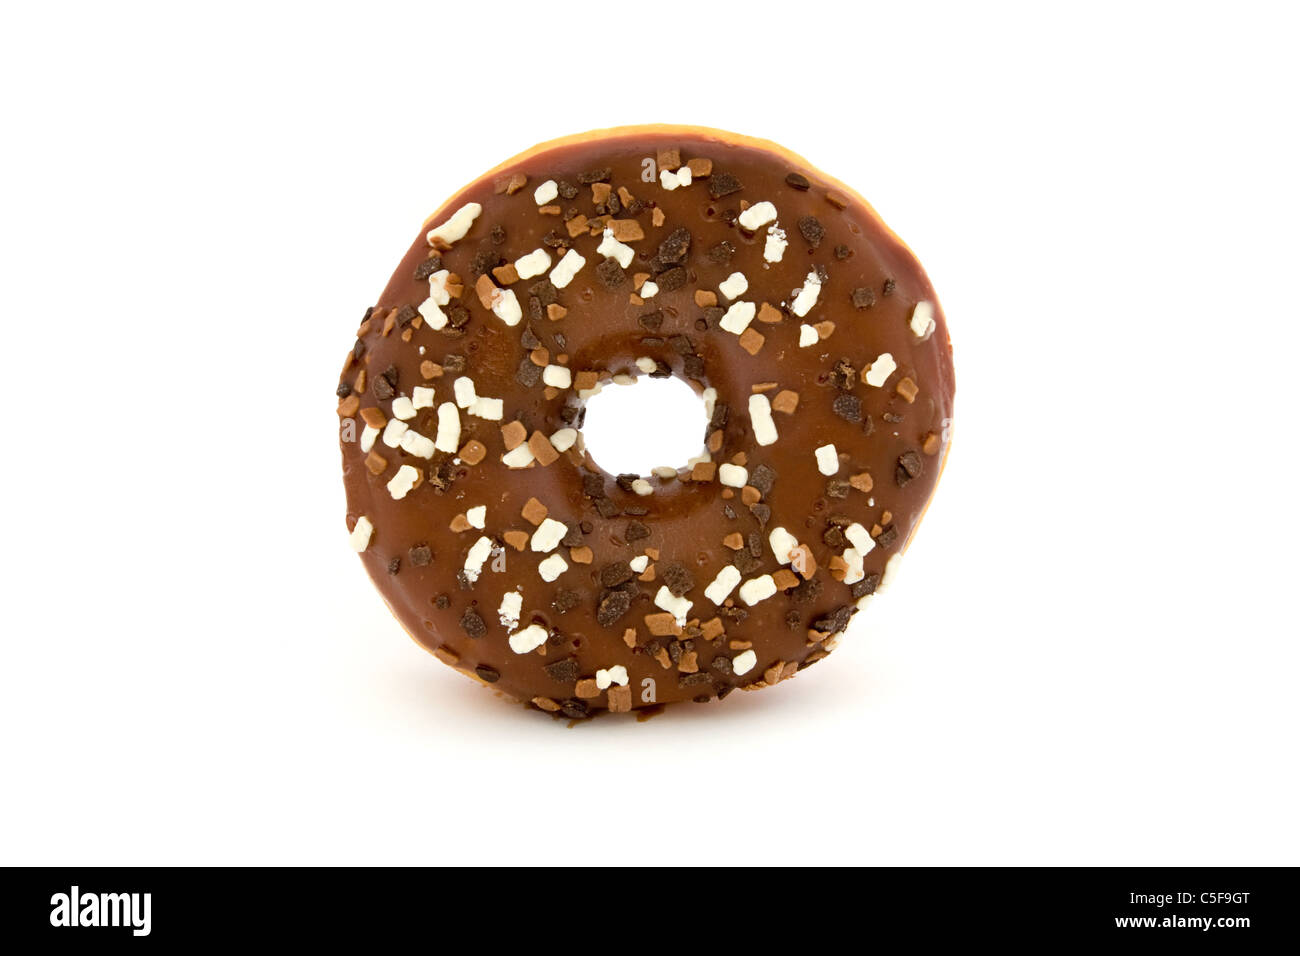 Chocolate doughnut isolated over white - Stock Image